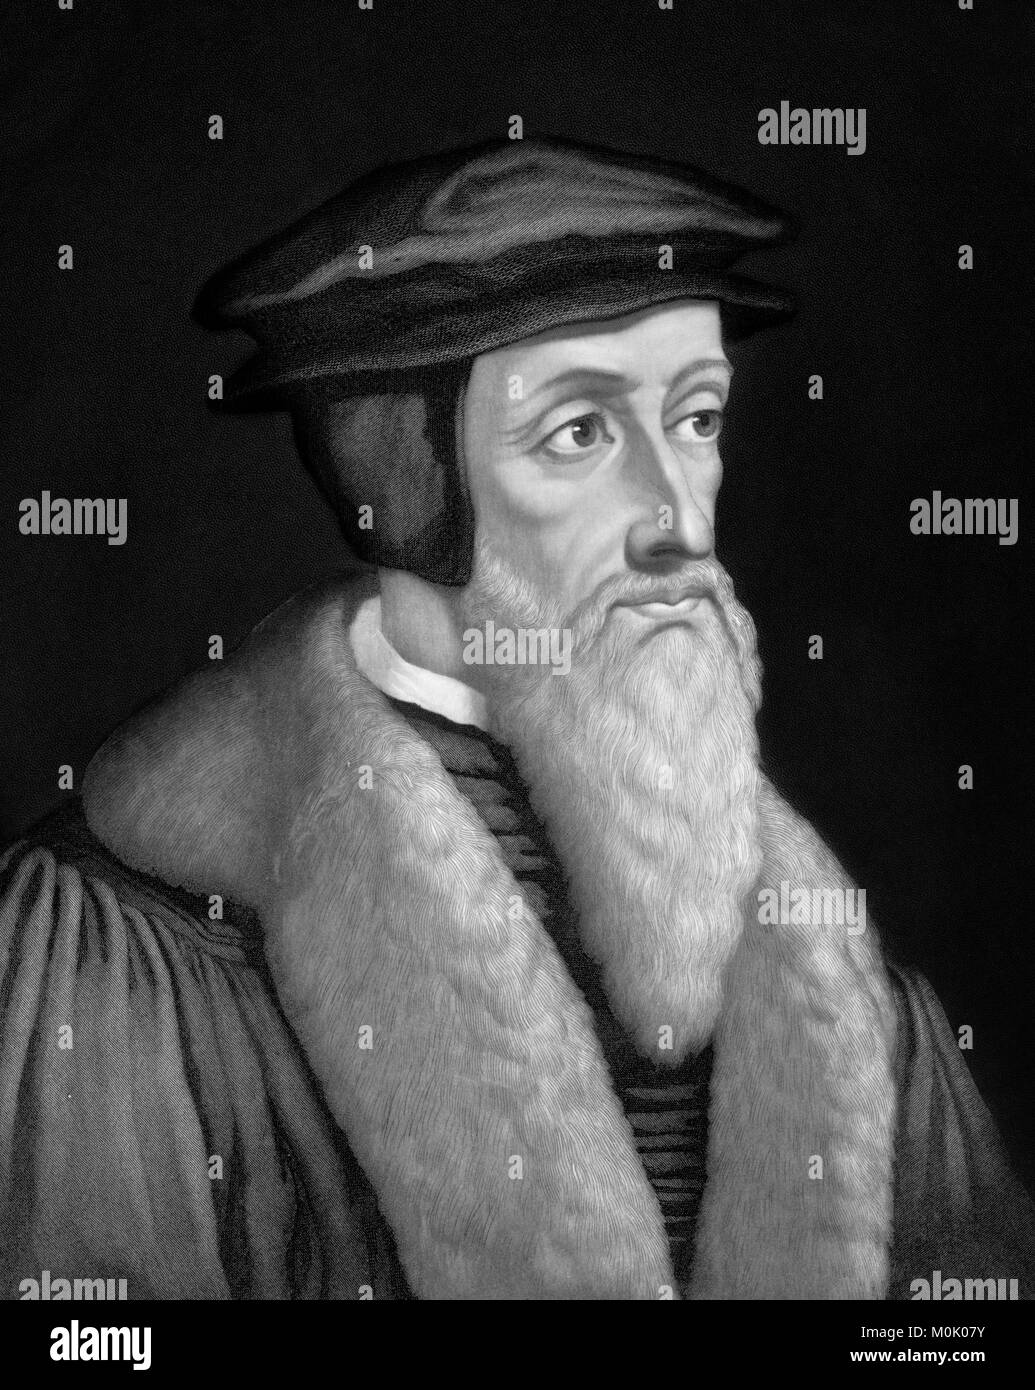 John Calvin (1509-1564), portrait of the French theologian and protestant reformer. An 1886 engraving by John Sartain - Stock Image